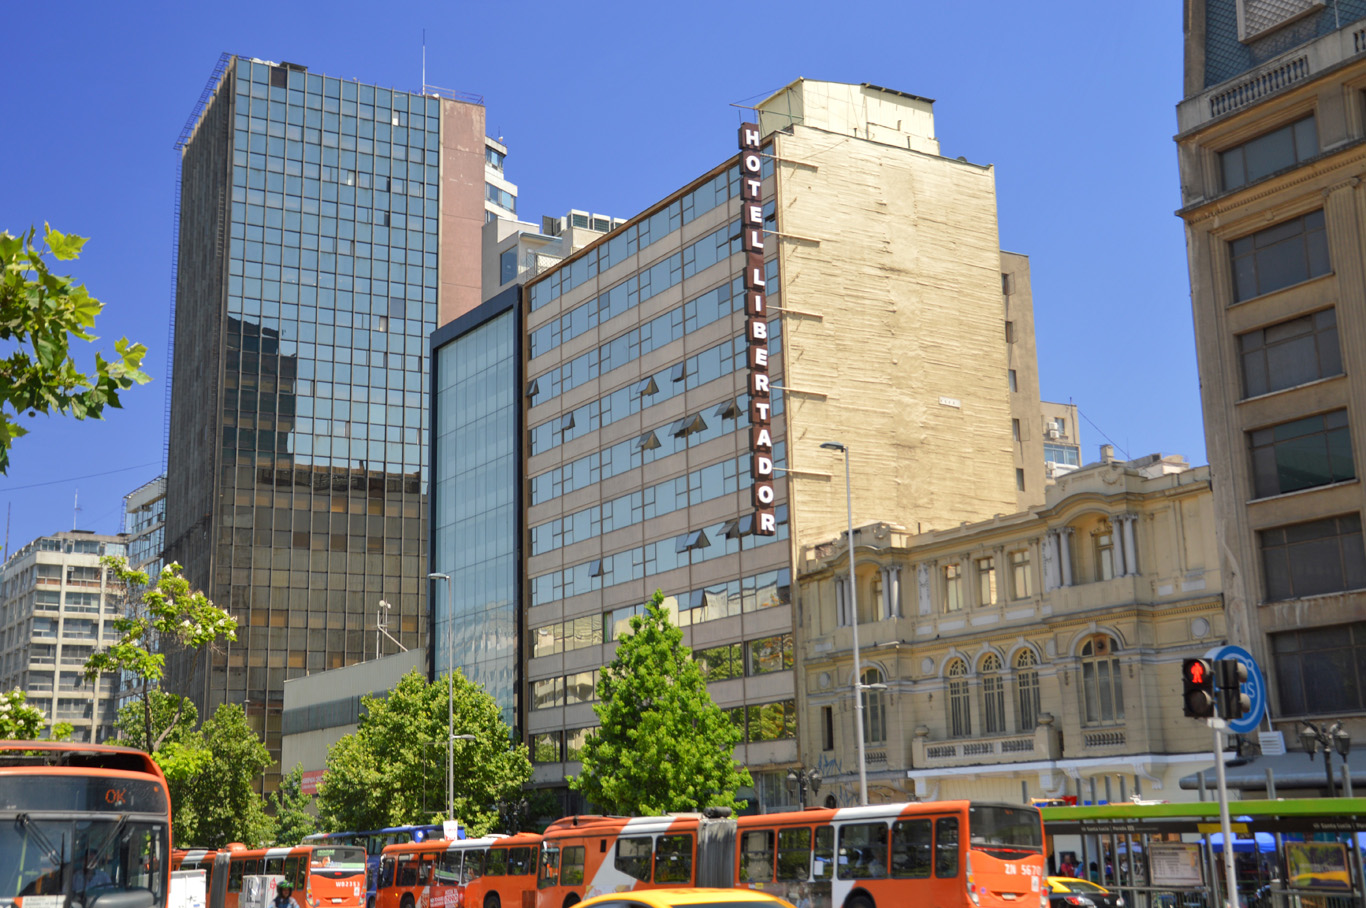 Typical street in Santiago